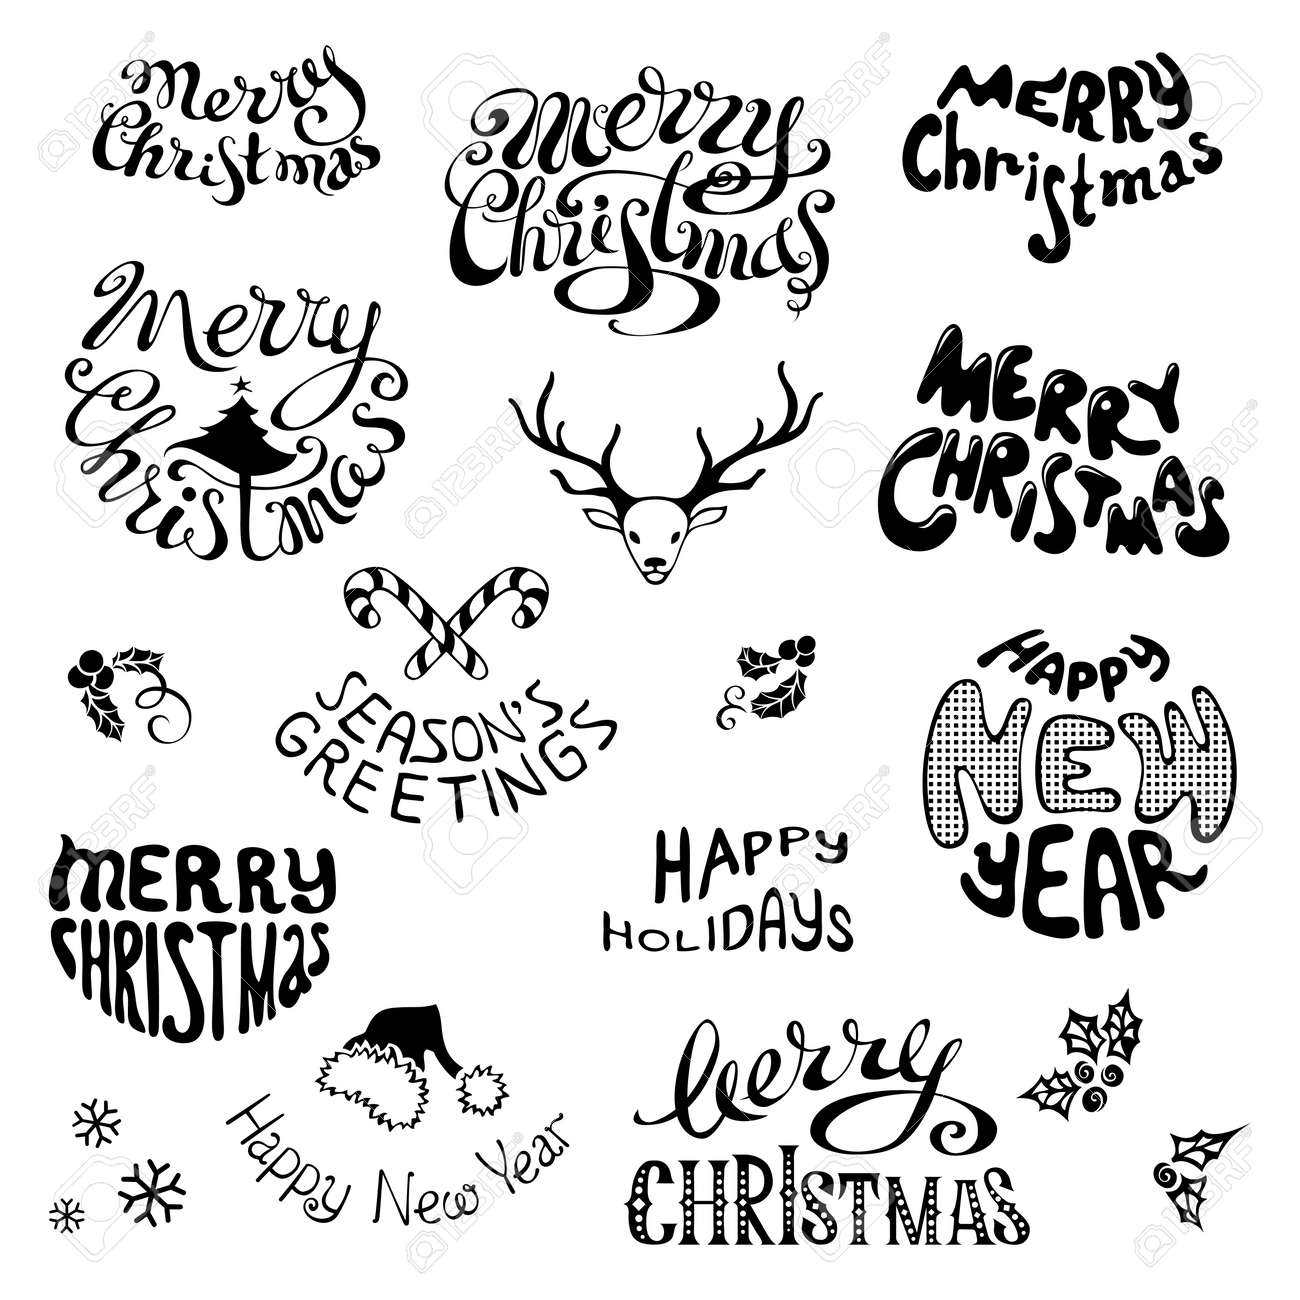 merry christmas and happy new year lettering black hand drawn design elements isolated on